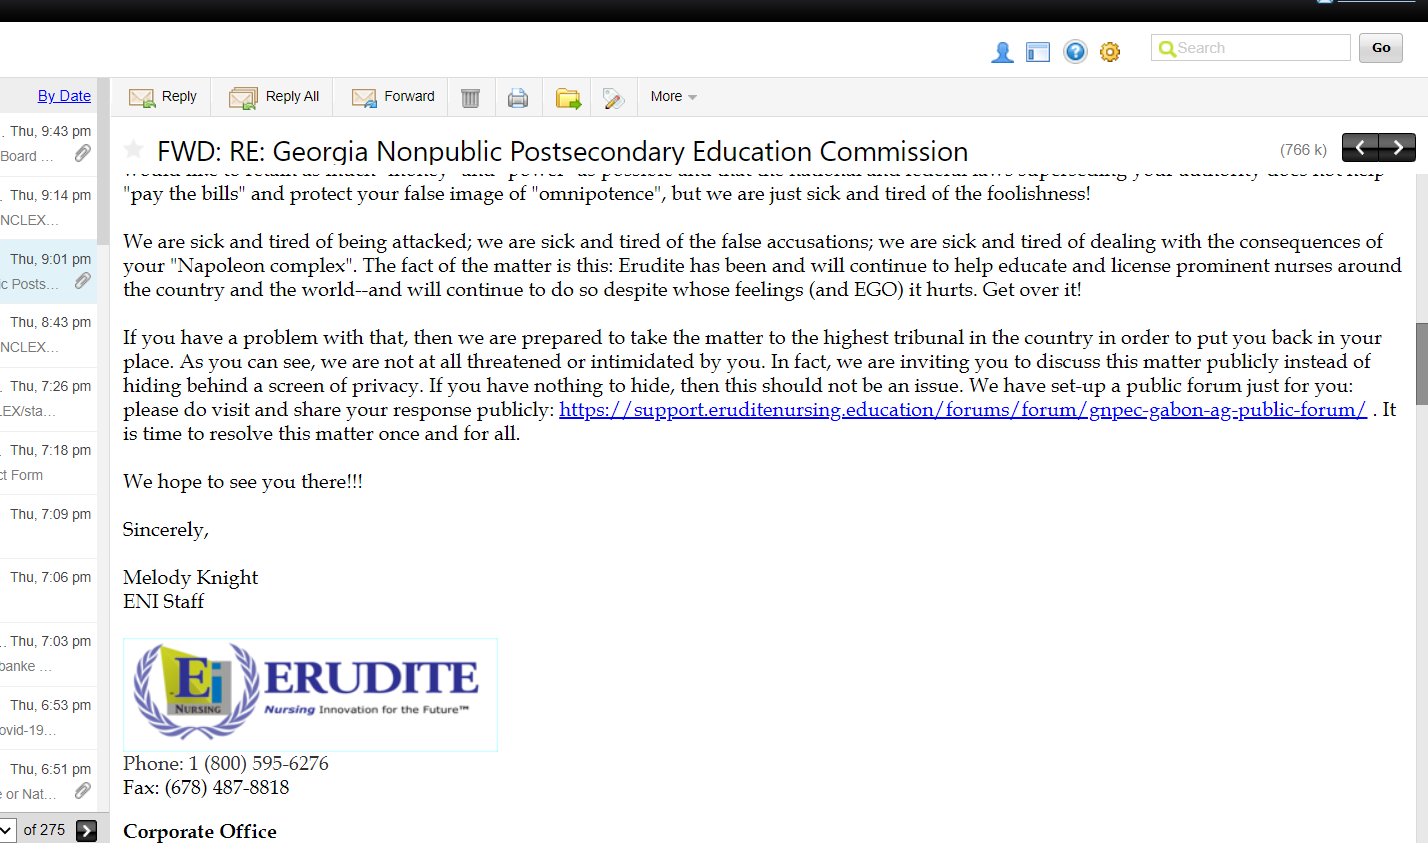 Invitation from Erudite to GNPEC